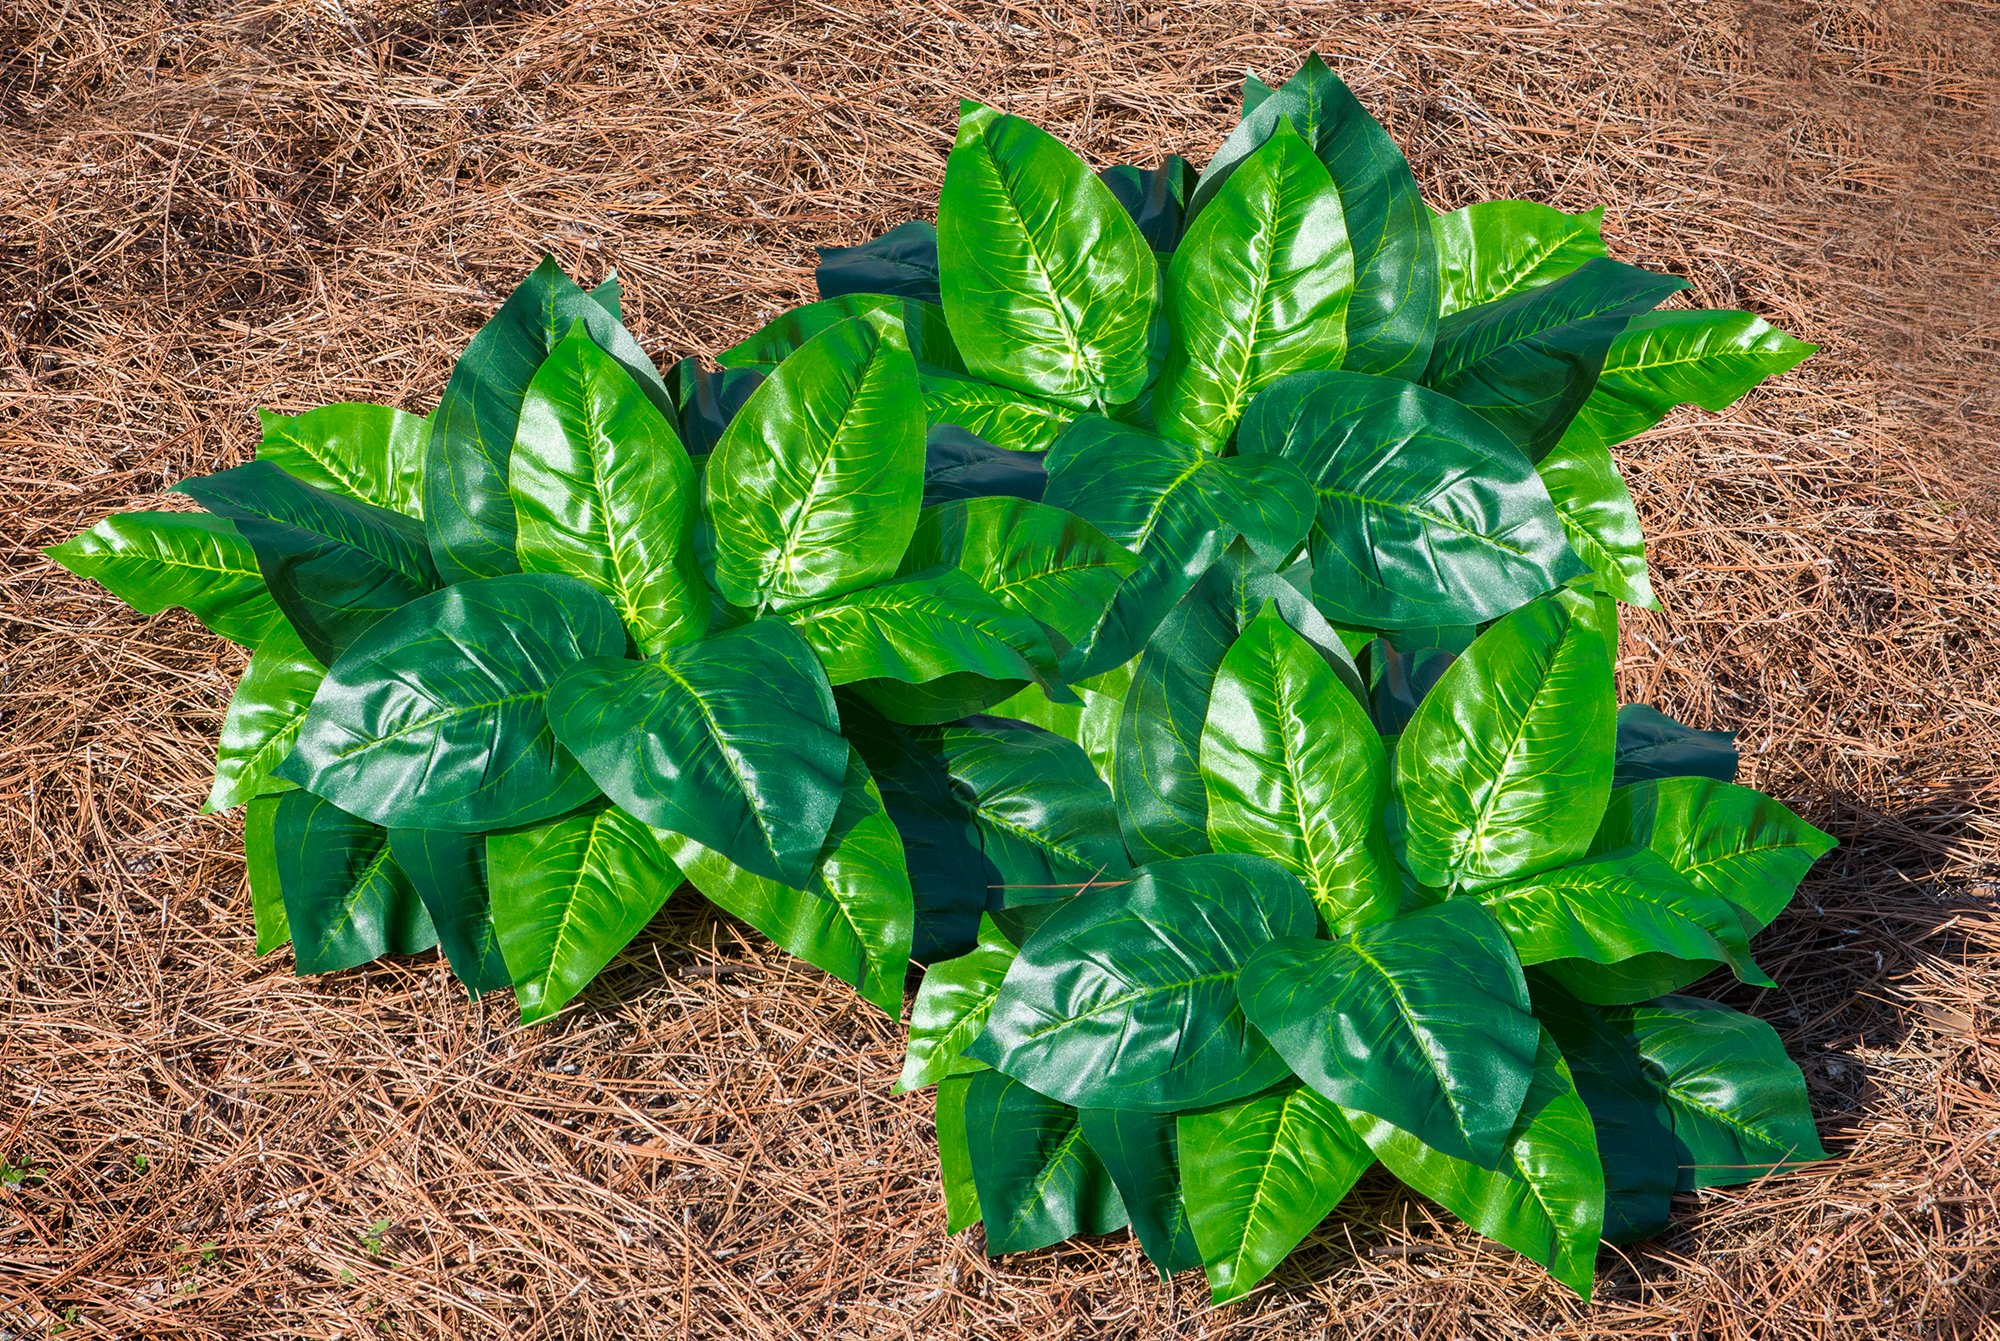 The Paragon Artificial Flowers - Set of 3 Hostas, Realistic Artificial Plants, Faux Plants, Polyester Leaves, Water, Weather Resistant, Home and Garden Decorative Silk Plants, Everyday Arrangements by The Paragon